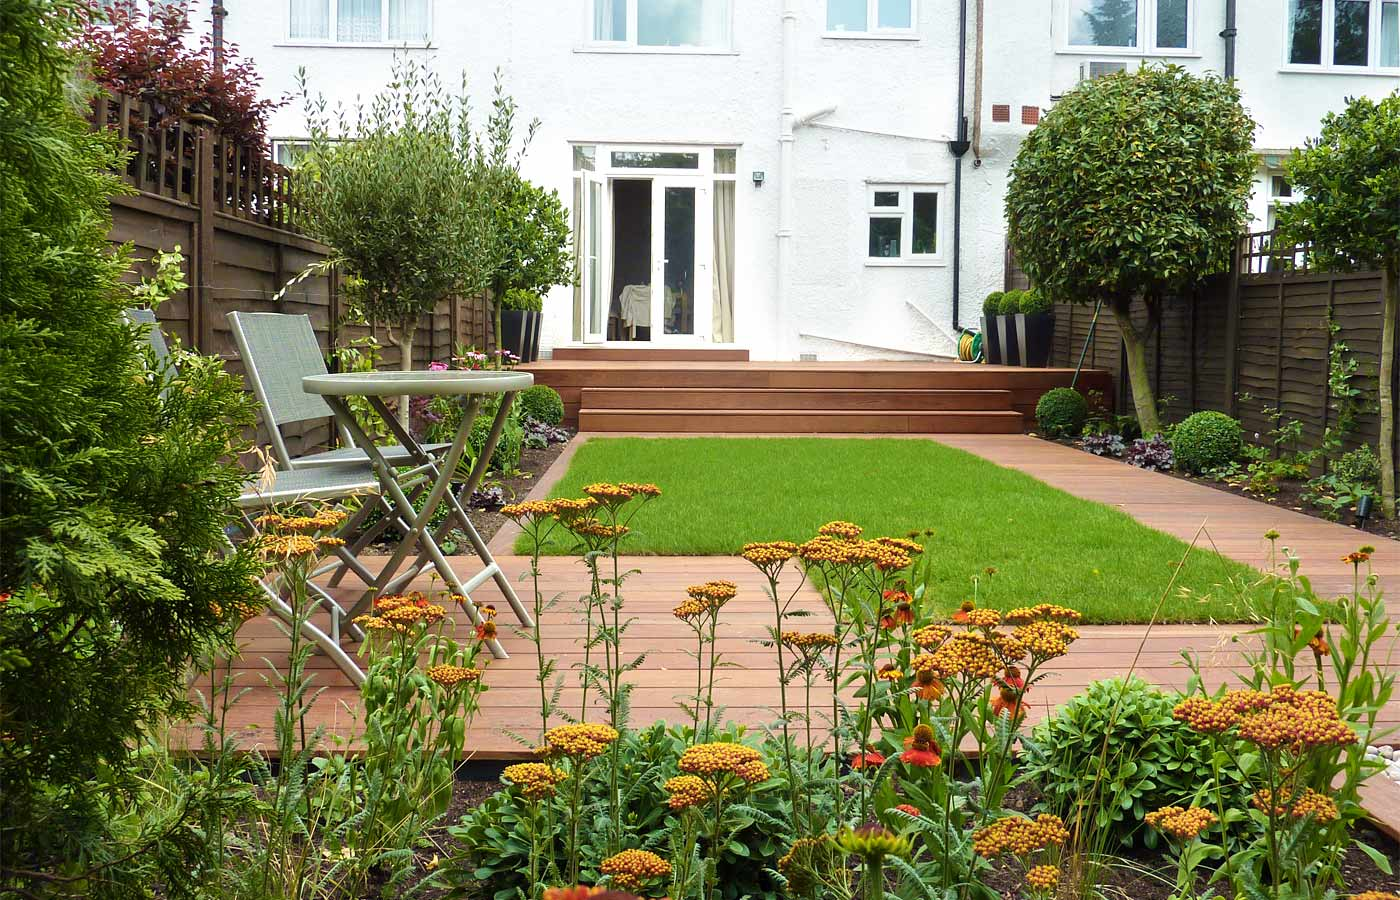 Contemporary garden design london for Contemporary garden designs and ideas